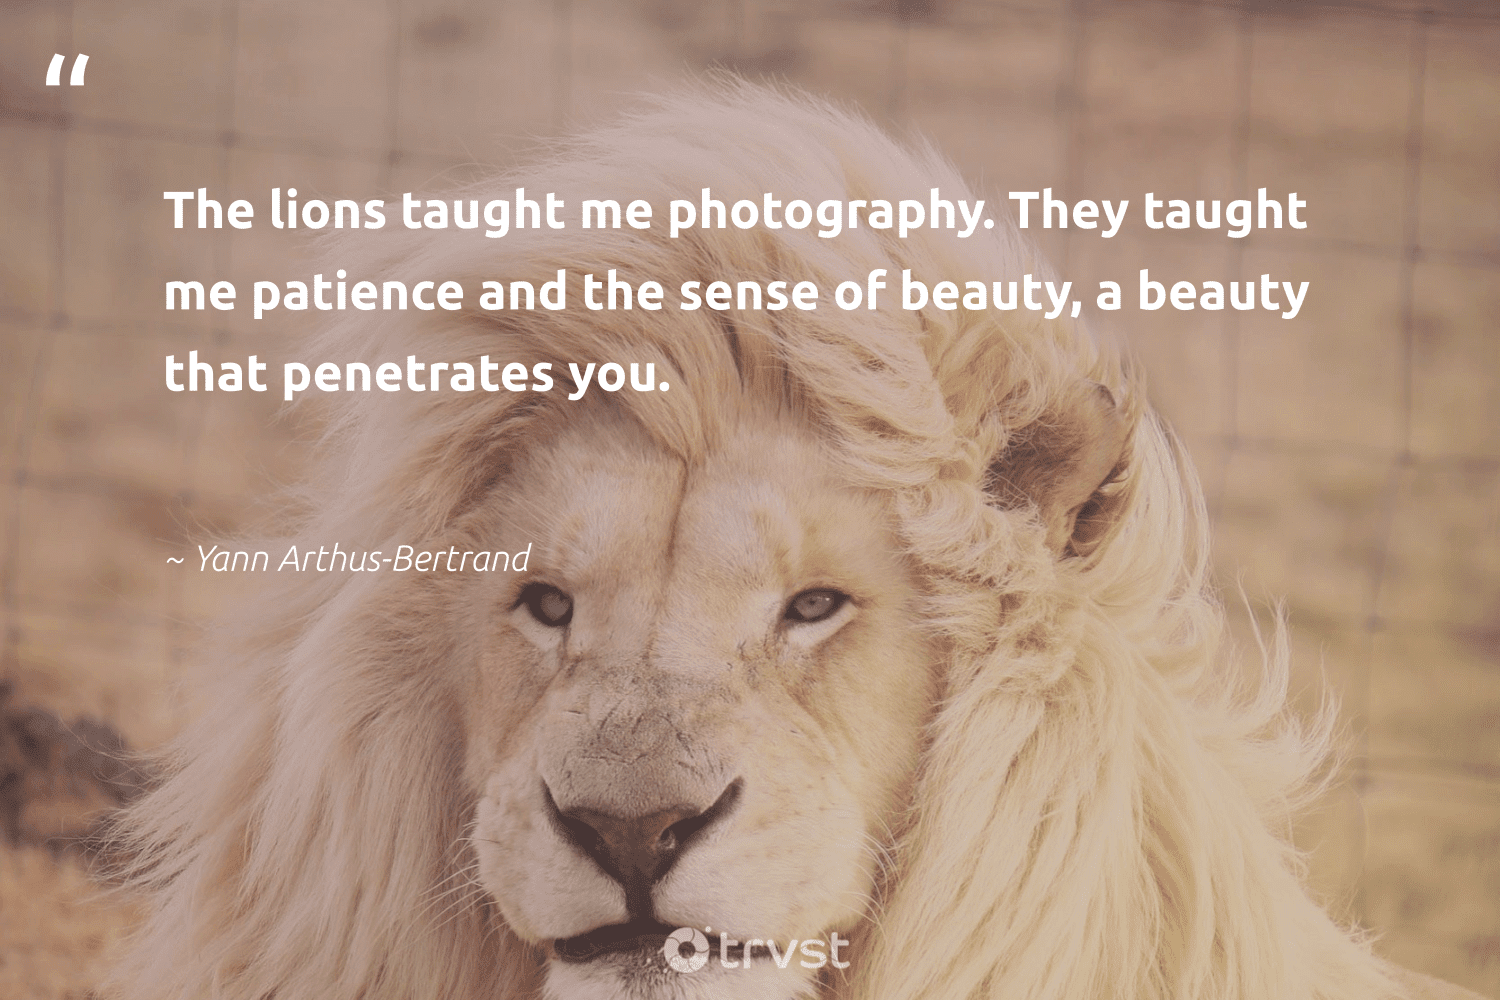 """""""The lions taught me photography. They taught me patience and the sense of beauty, a beauty that penetrates you.""""  - Yann Arthus-Bertrand #trvst #quotes #beauty #lions #conservation #takeaction #sustainability #impact #big5 #planetearthfirst #majesticwildlife #beinspired"""